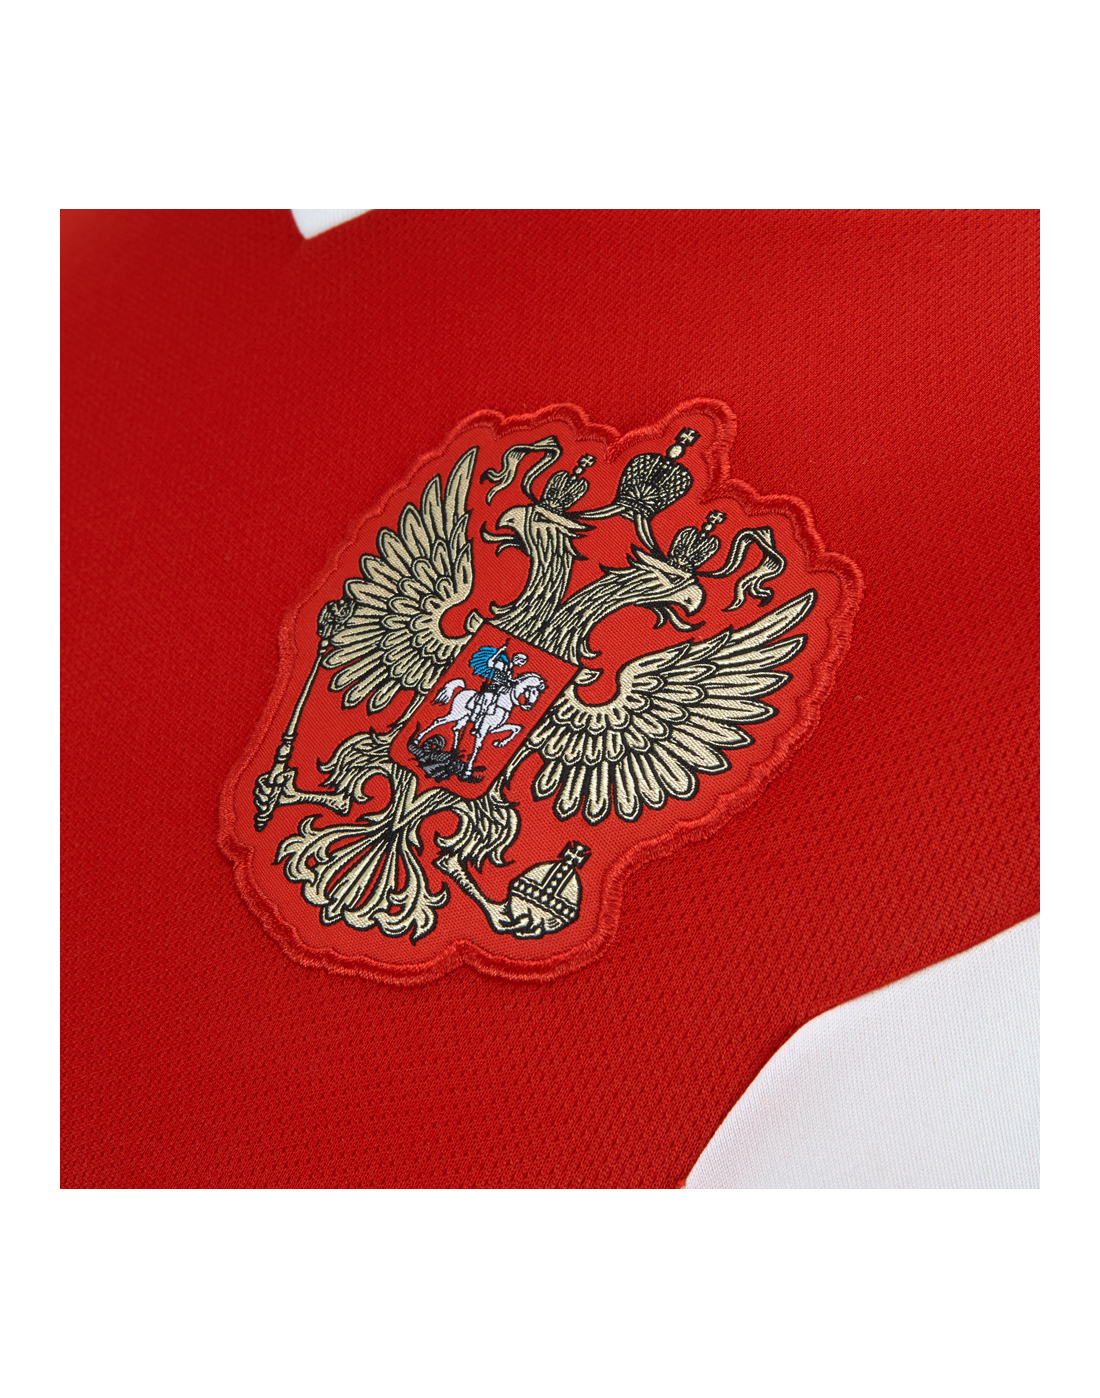 3ffe6f152 Adult Russia World Cup 2018 Jersey